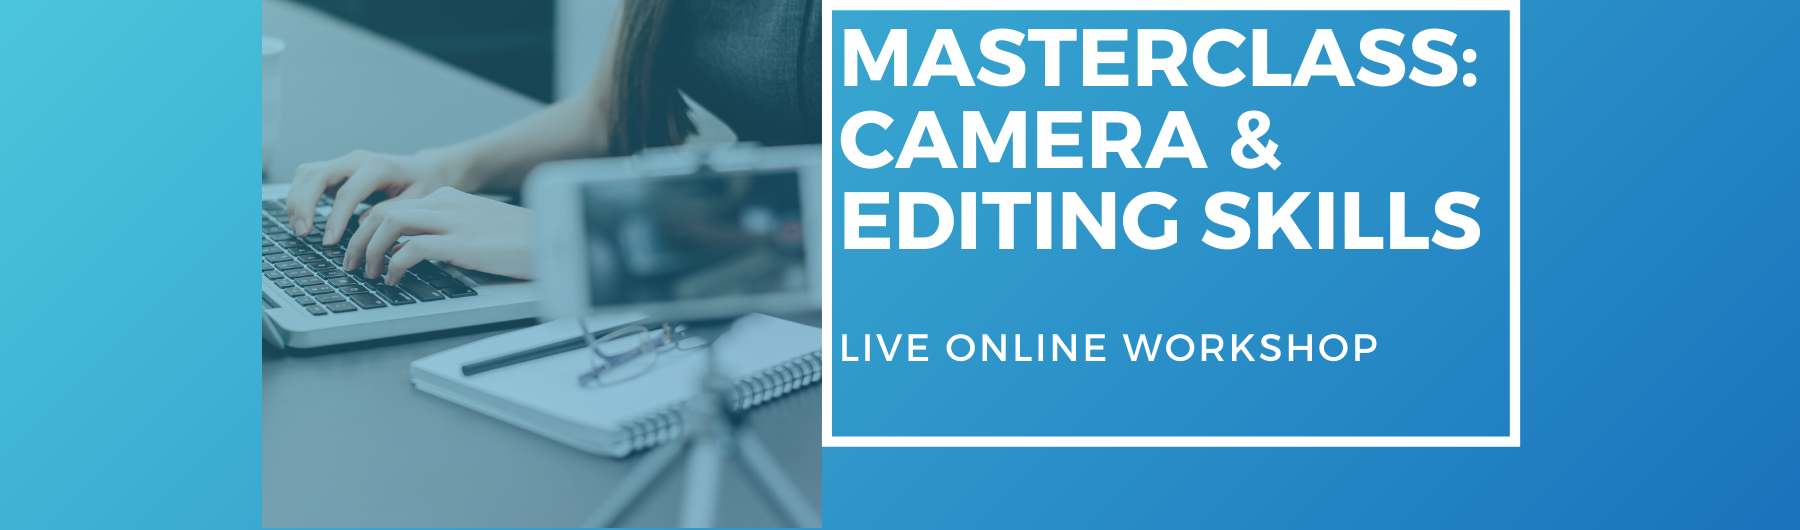 Masterclass In Camera & Editing Skills - Live Two-Day Workshop